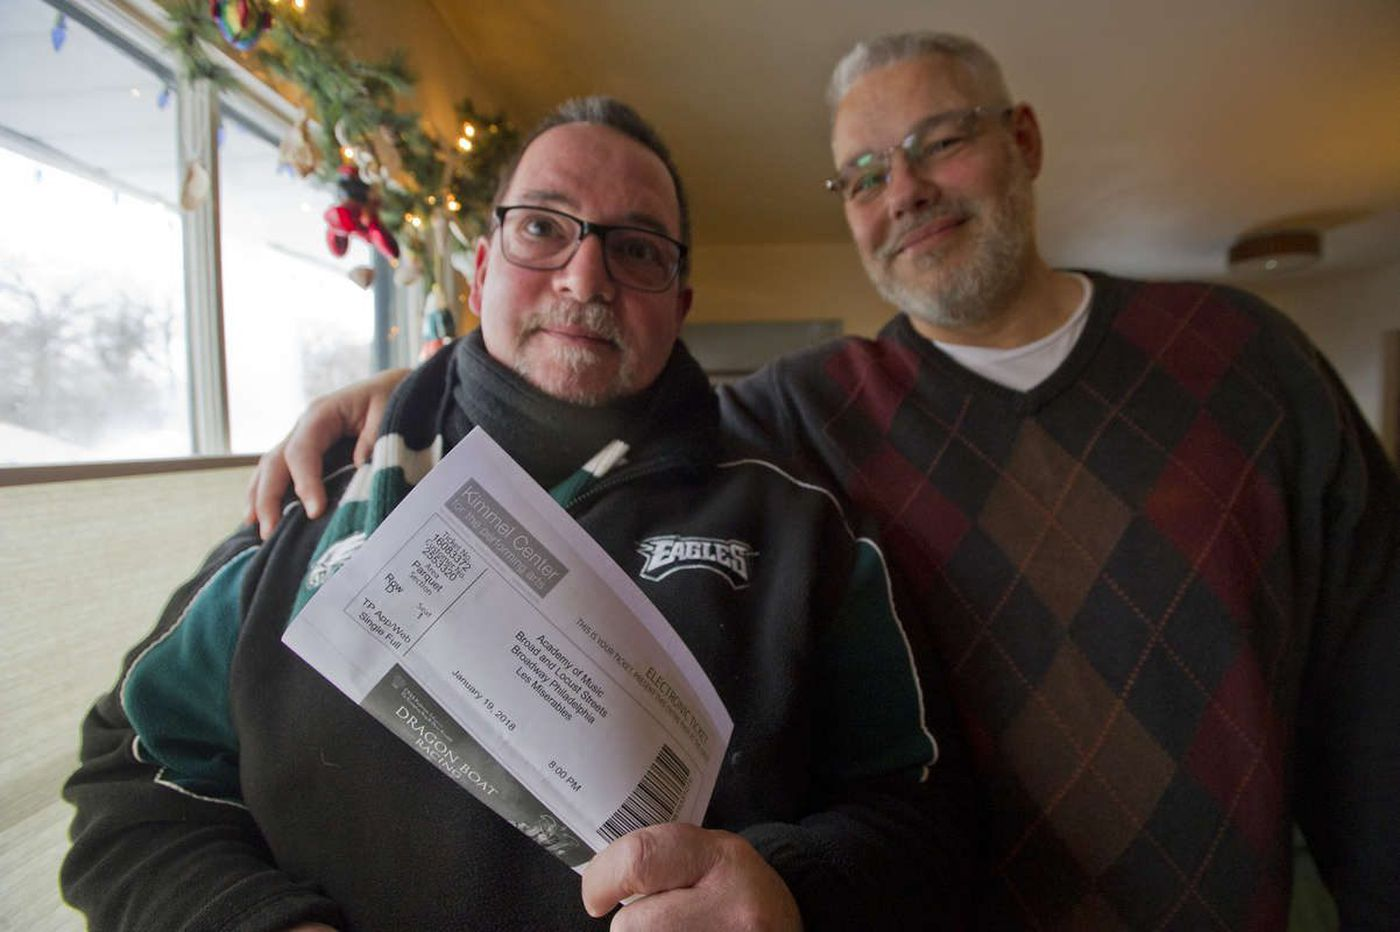 Philly's own Les Misérables: Eagles fans with hot show tickets and other commitments at game time